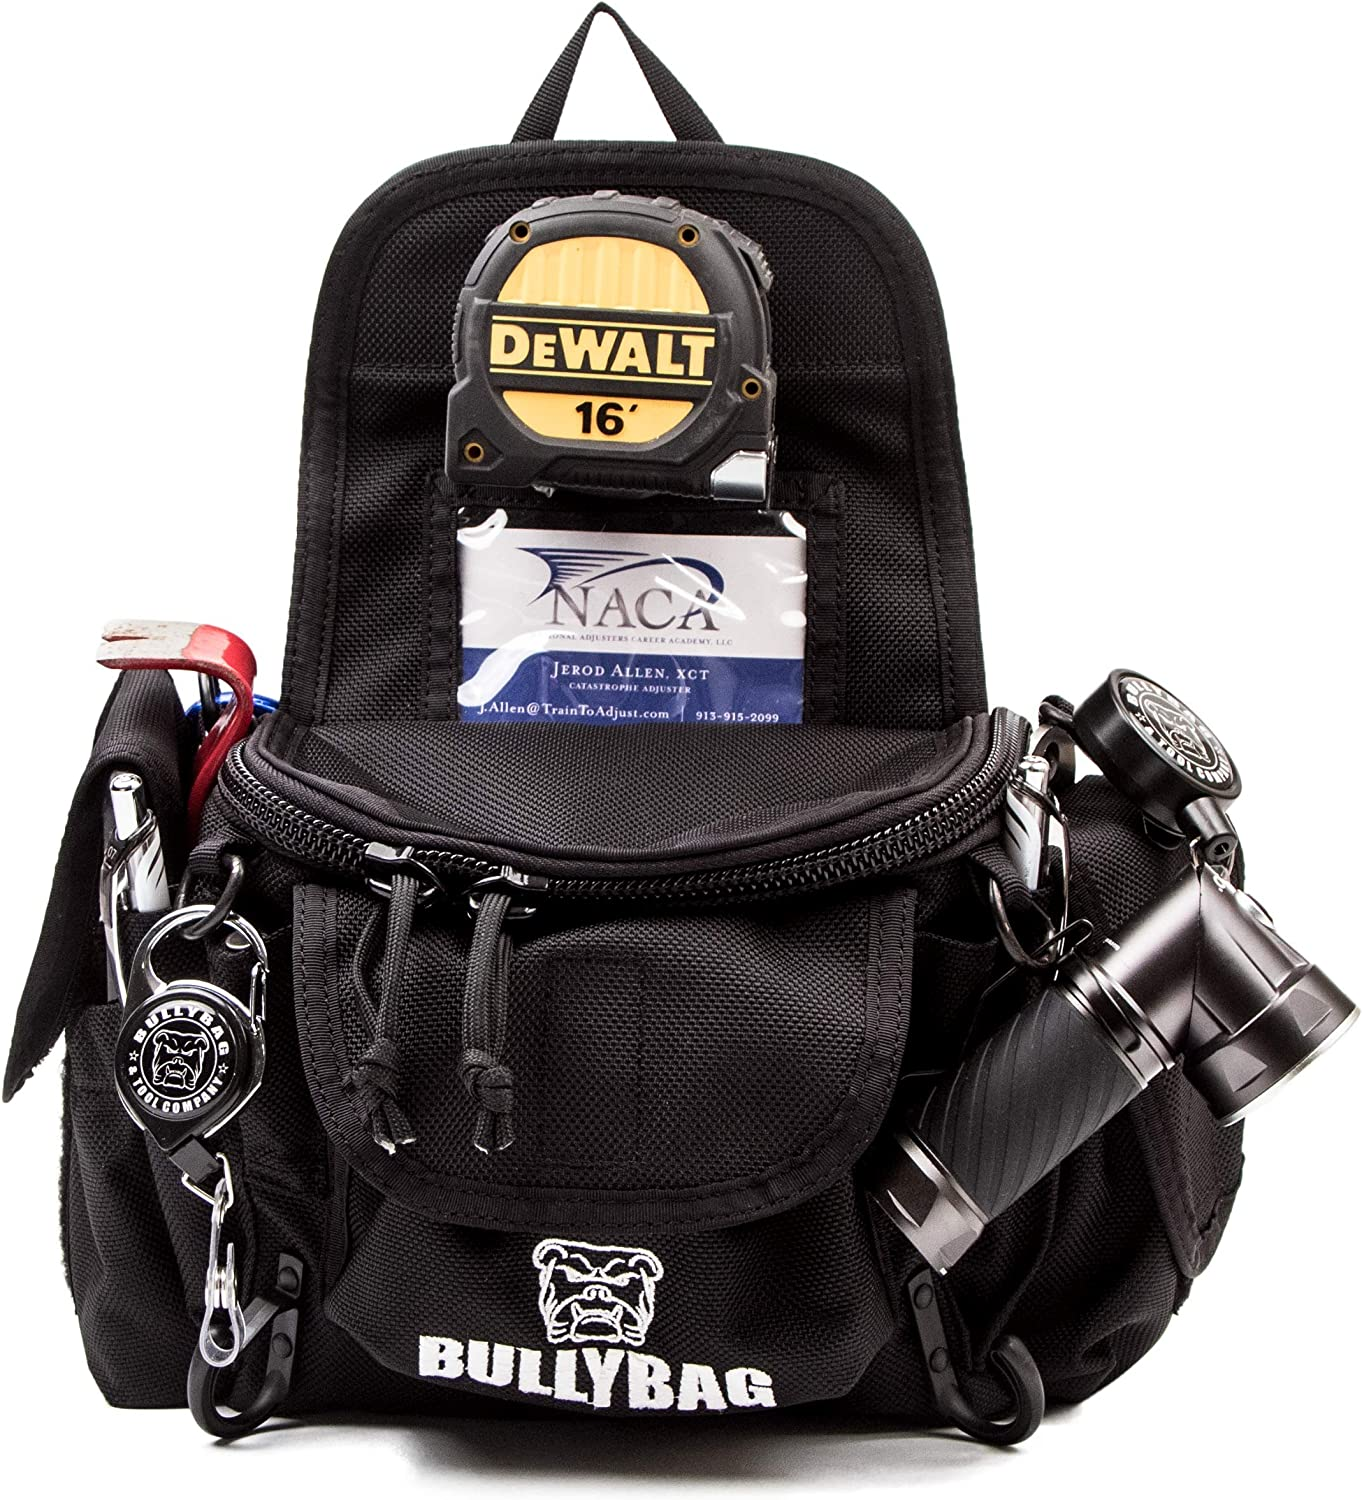 Adjuster/Estimators BullyBag Ultra Pouch - Custom Tool Belt/Pouch w Paddle Hip Clip w Badge & Gear Retainers for Adjusters, Estimators, Electricians, Roofing Sales & more